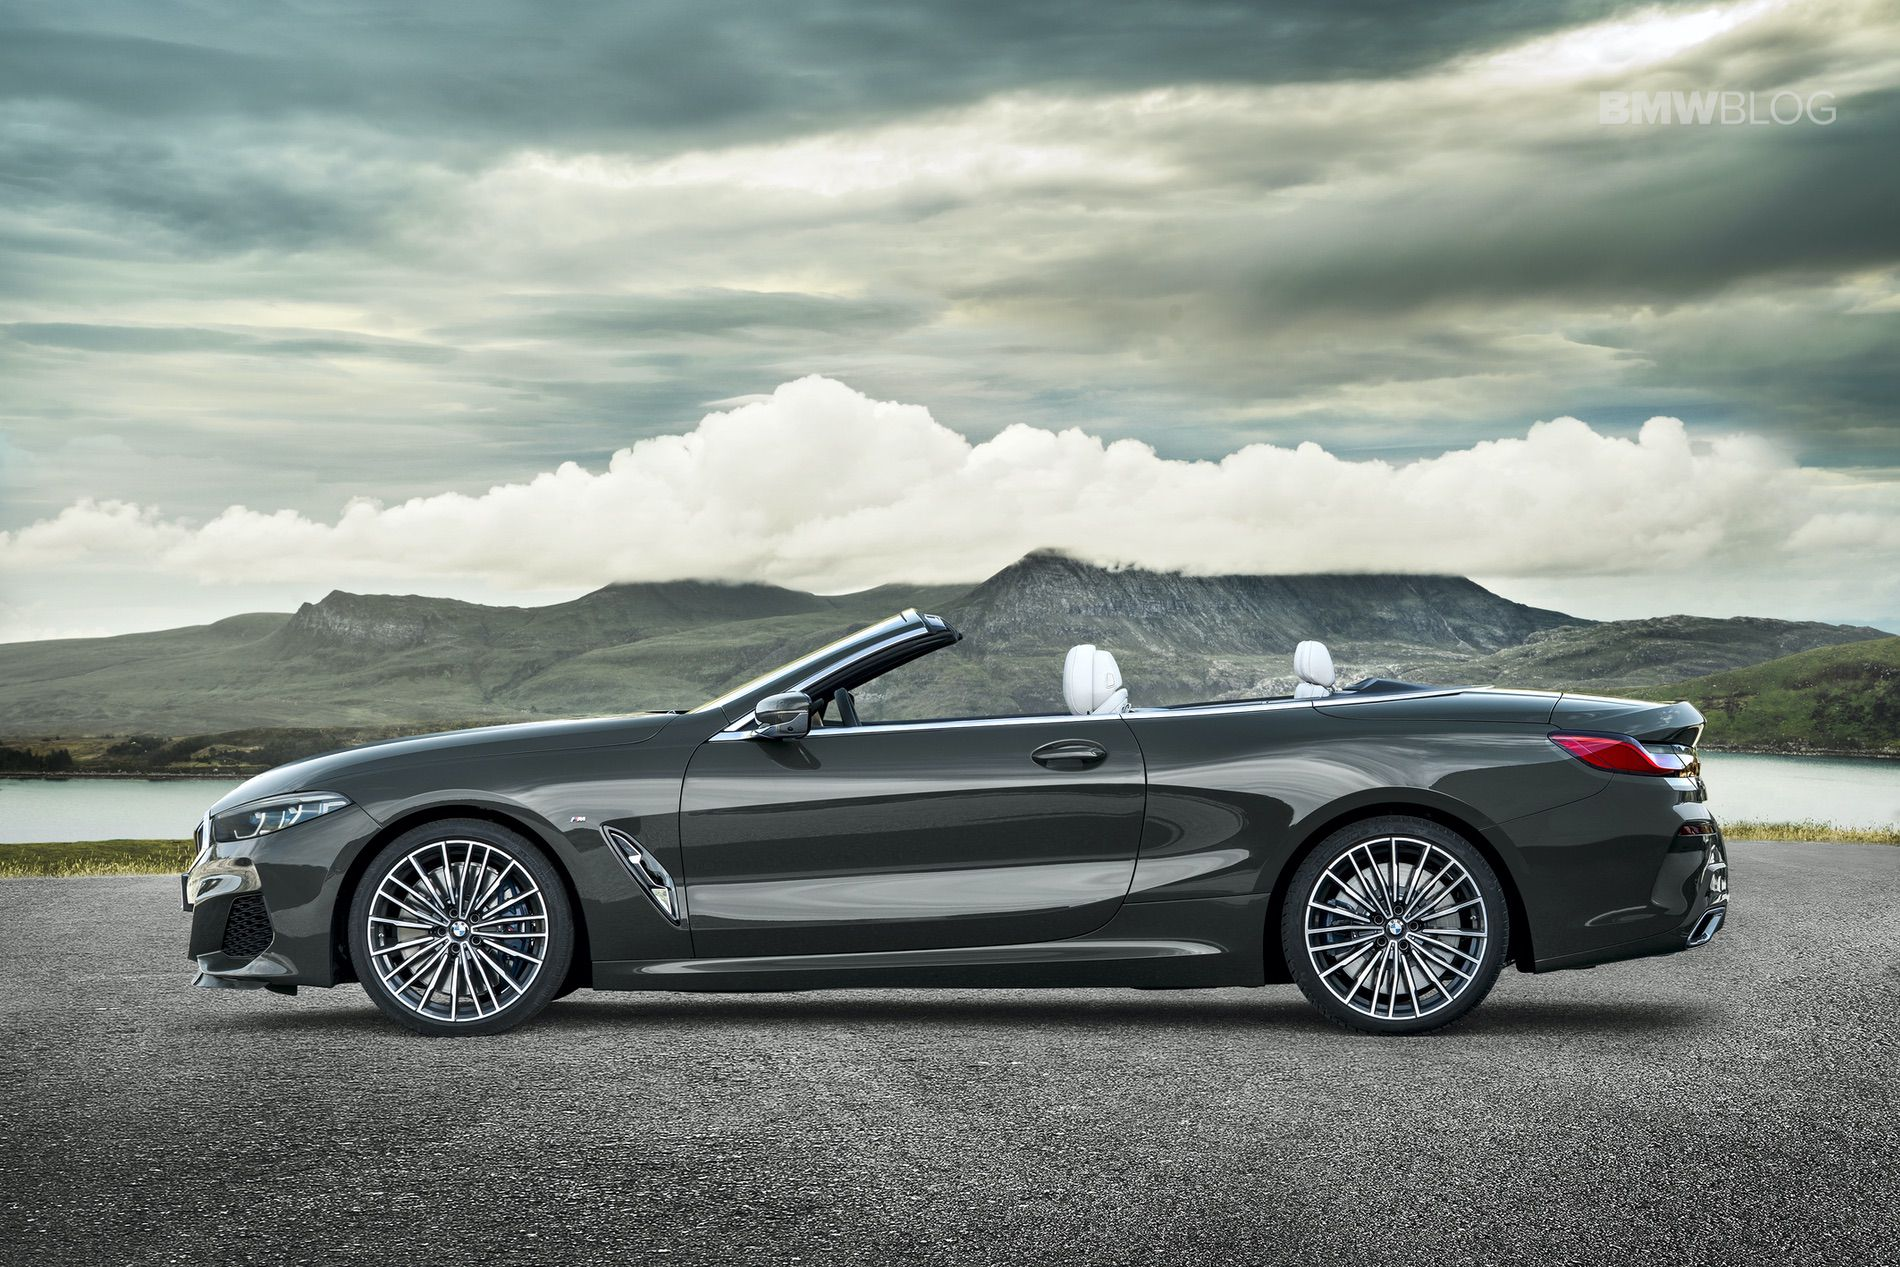 BMW unveils all-new 8 Series Convertible